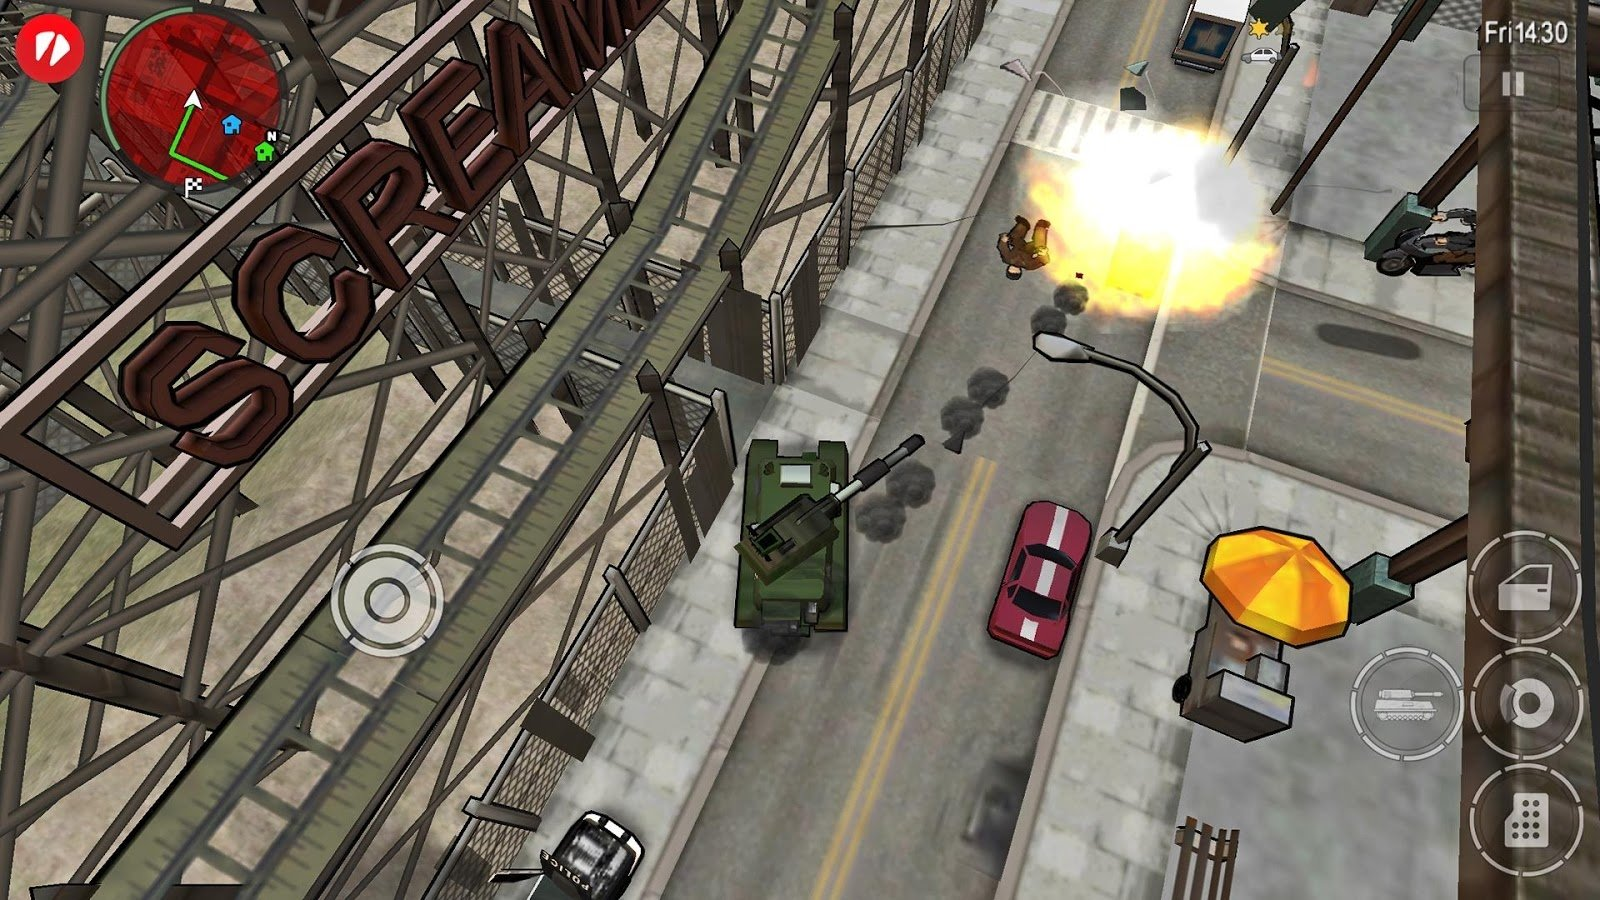 GTA Chinatown Wars Android Apk Data + MOD 1.0 Android